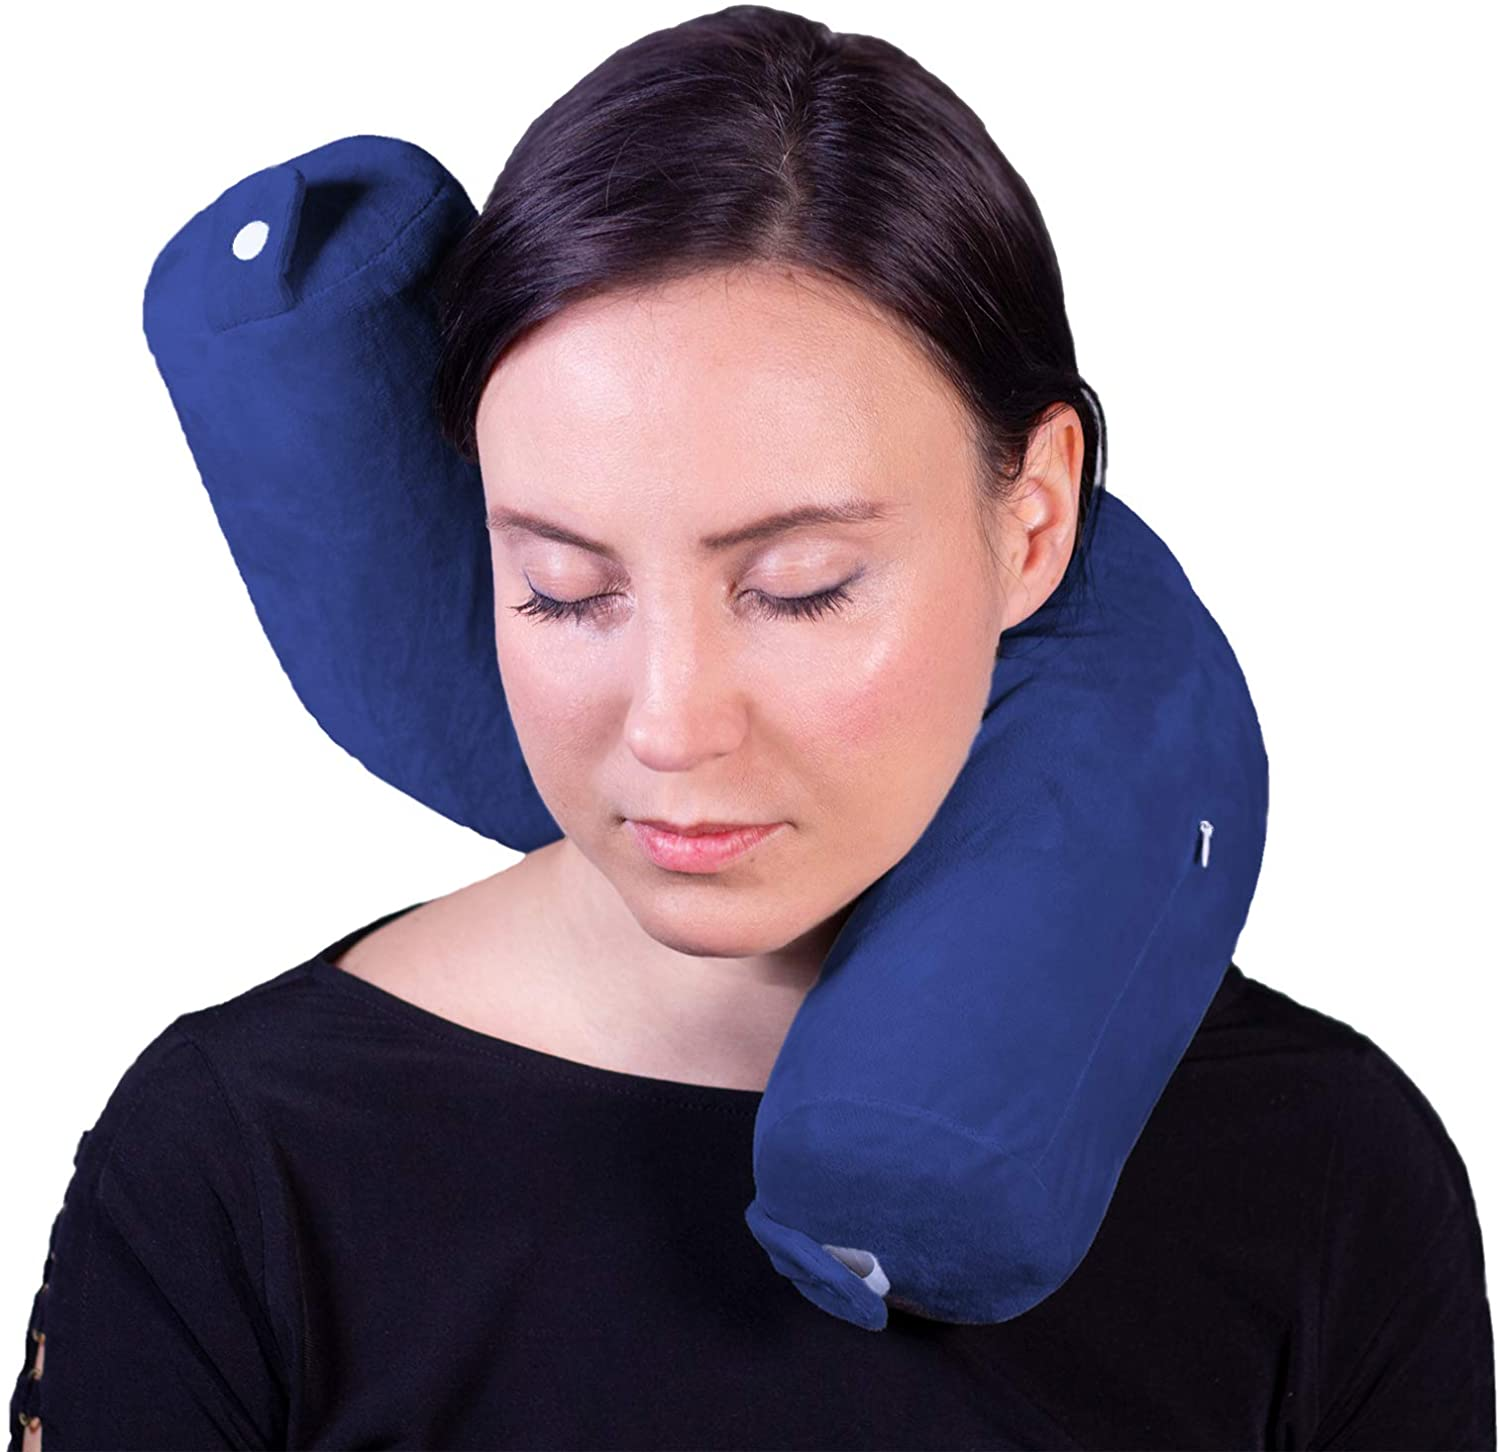 Vertall Travel Pillow Twist Memory Foam for Neck, Chin, Back, and Leg Support for Sleep, Work, Travel, or Home - Lightweight and Adjustable (Navy Blue)